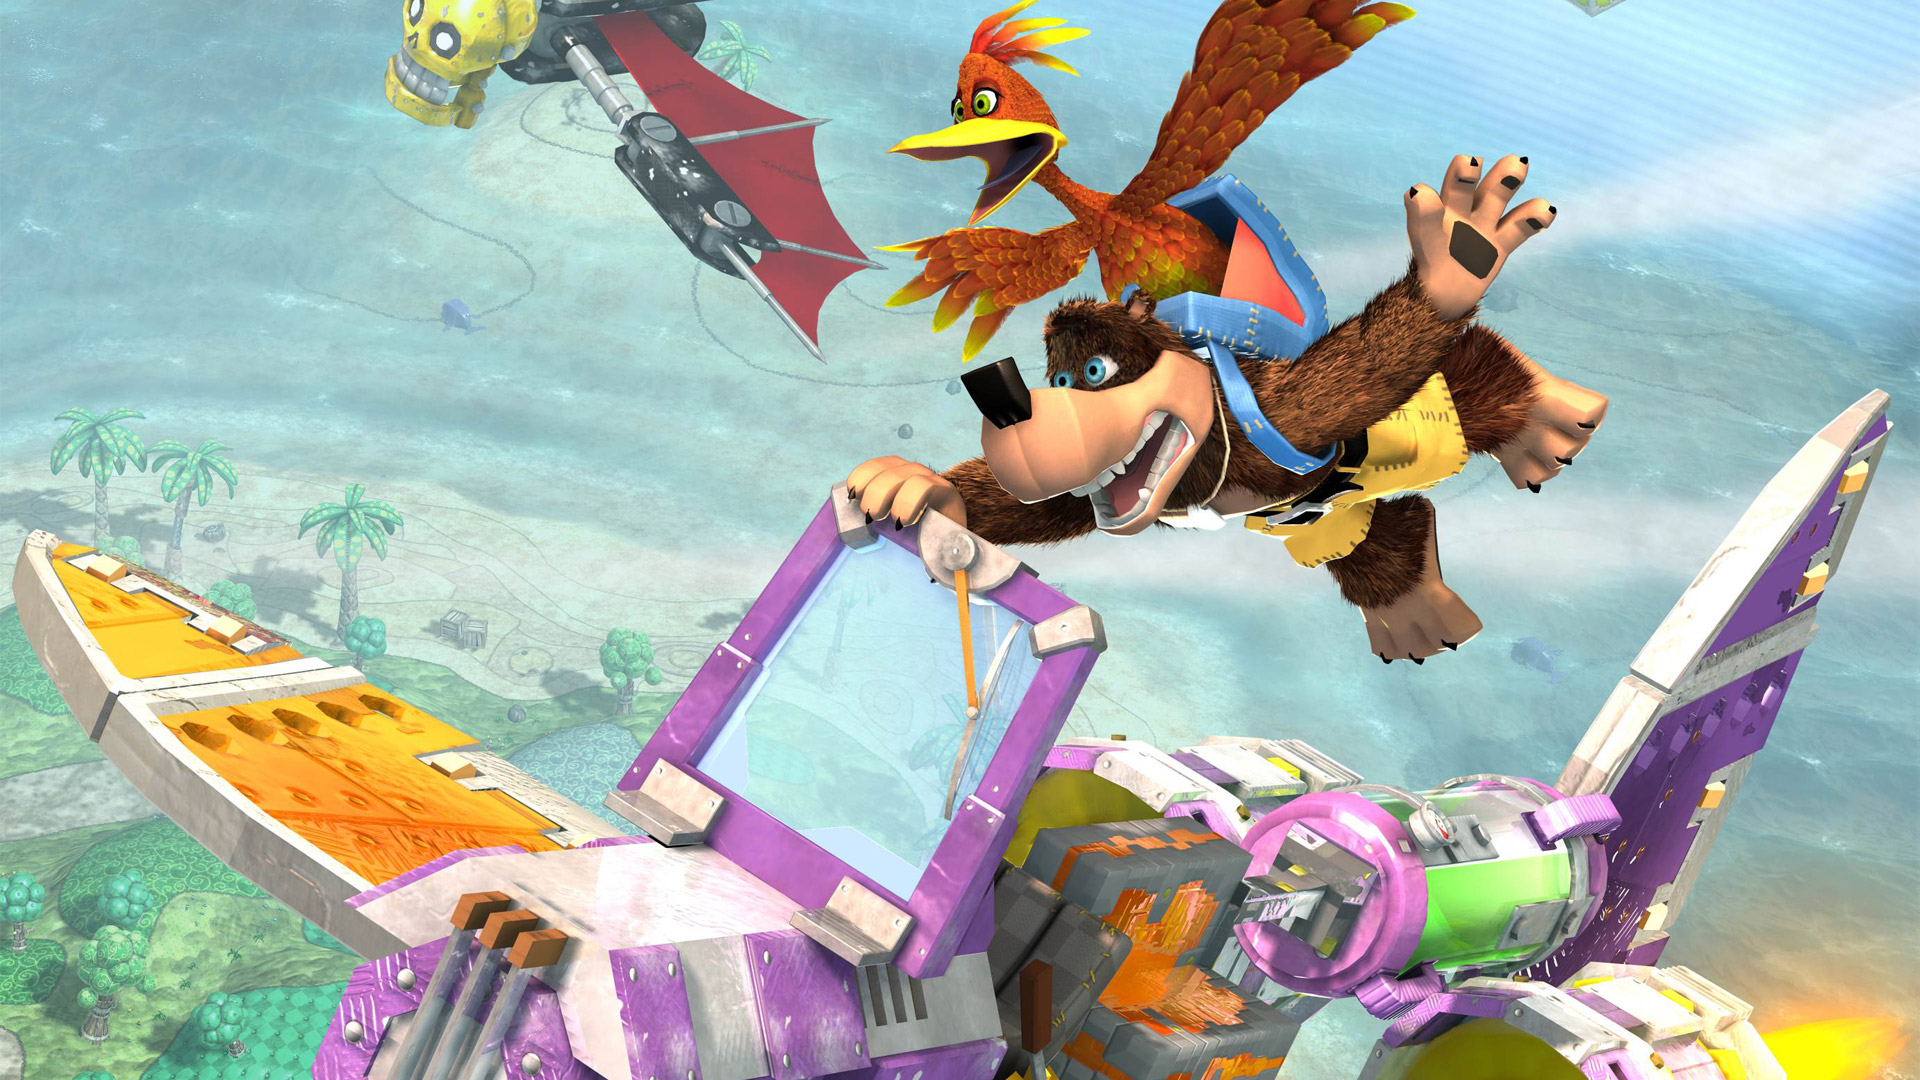 Banjo-Kazooie: Nuts & Bolts Wallpaper in 1920x1080